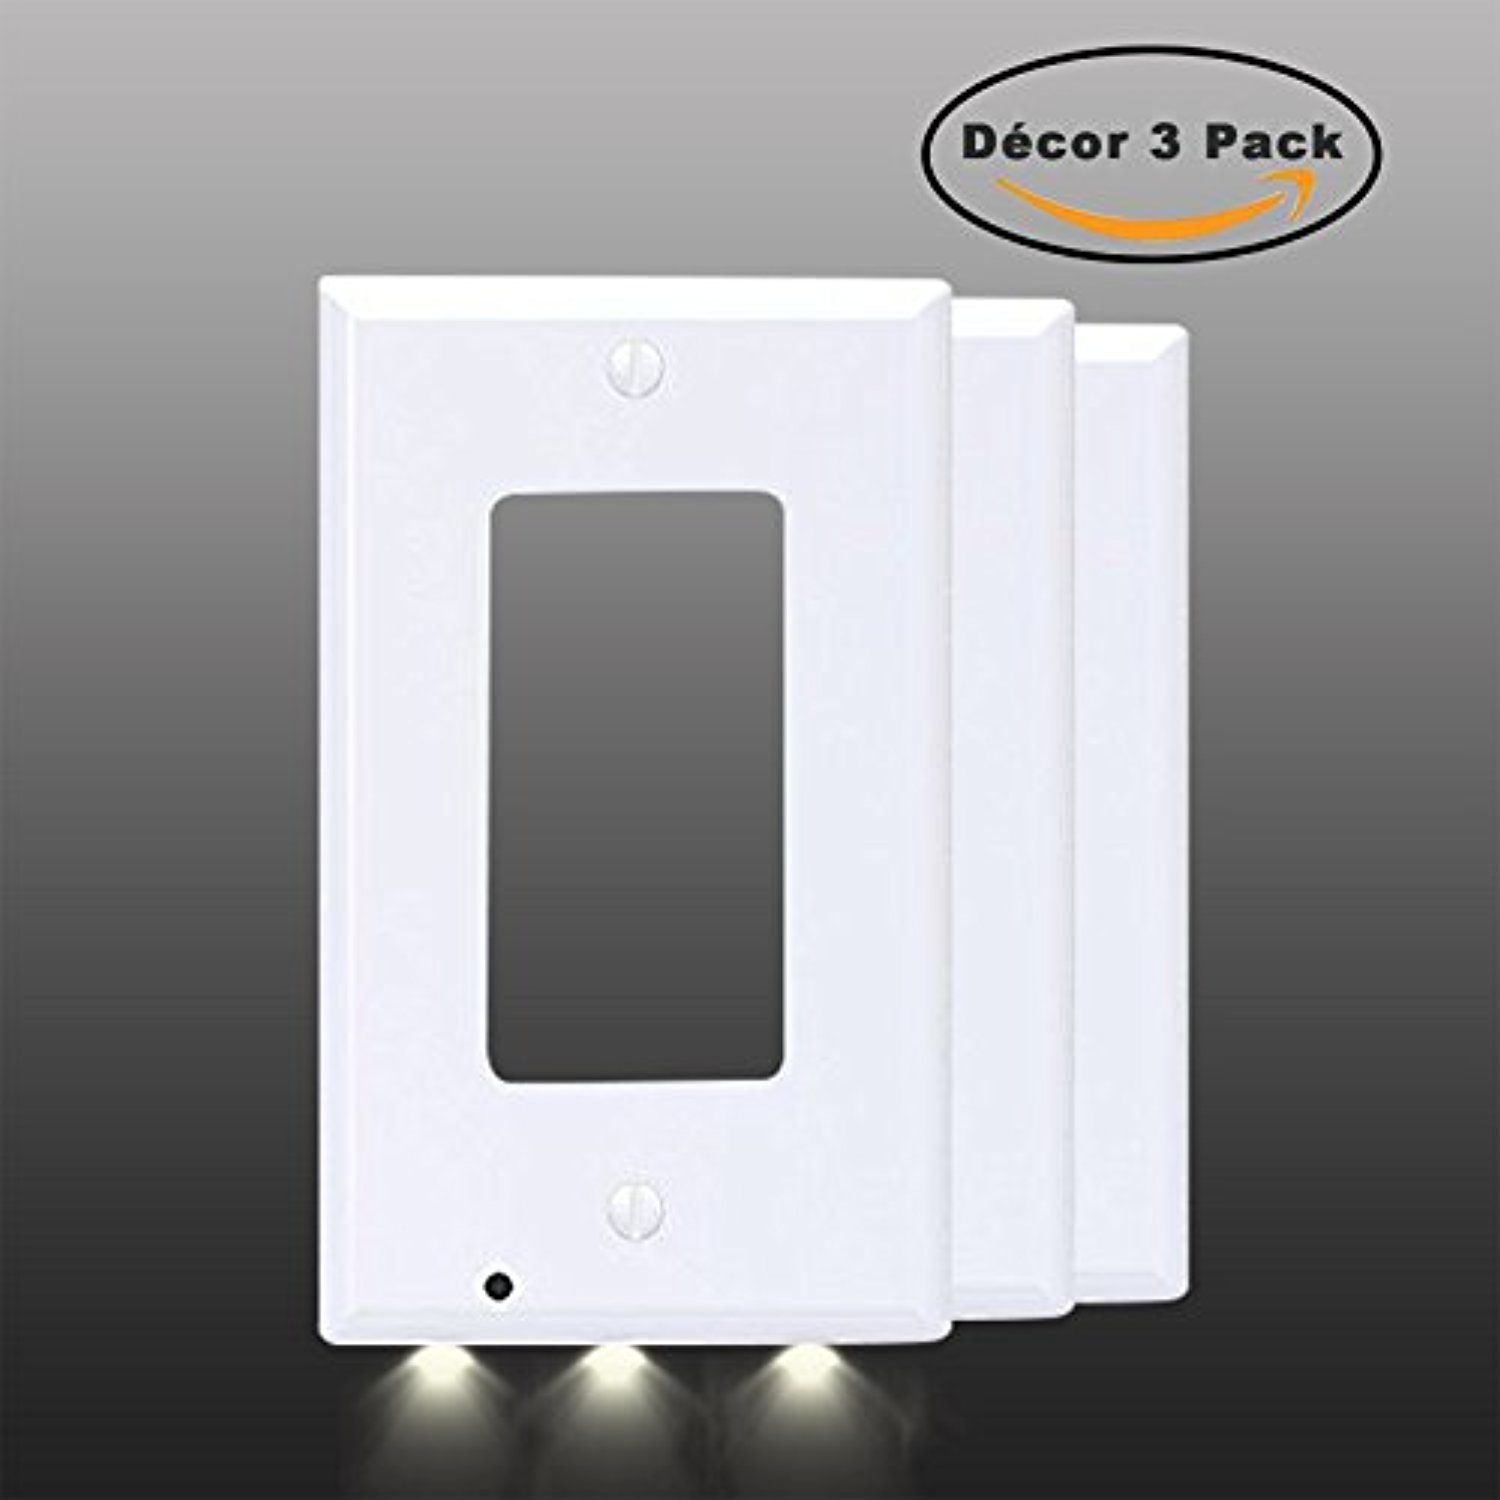 Exgreem Guidelight Best Energy Saving Led Night Lights Wall Outlet Cover Fireproof Material No Batteries Or Wires Wall Outlets Led Night Light Outlet Covers